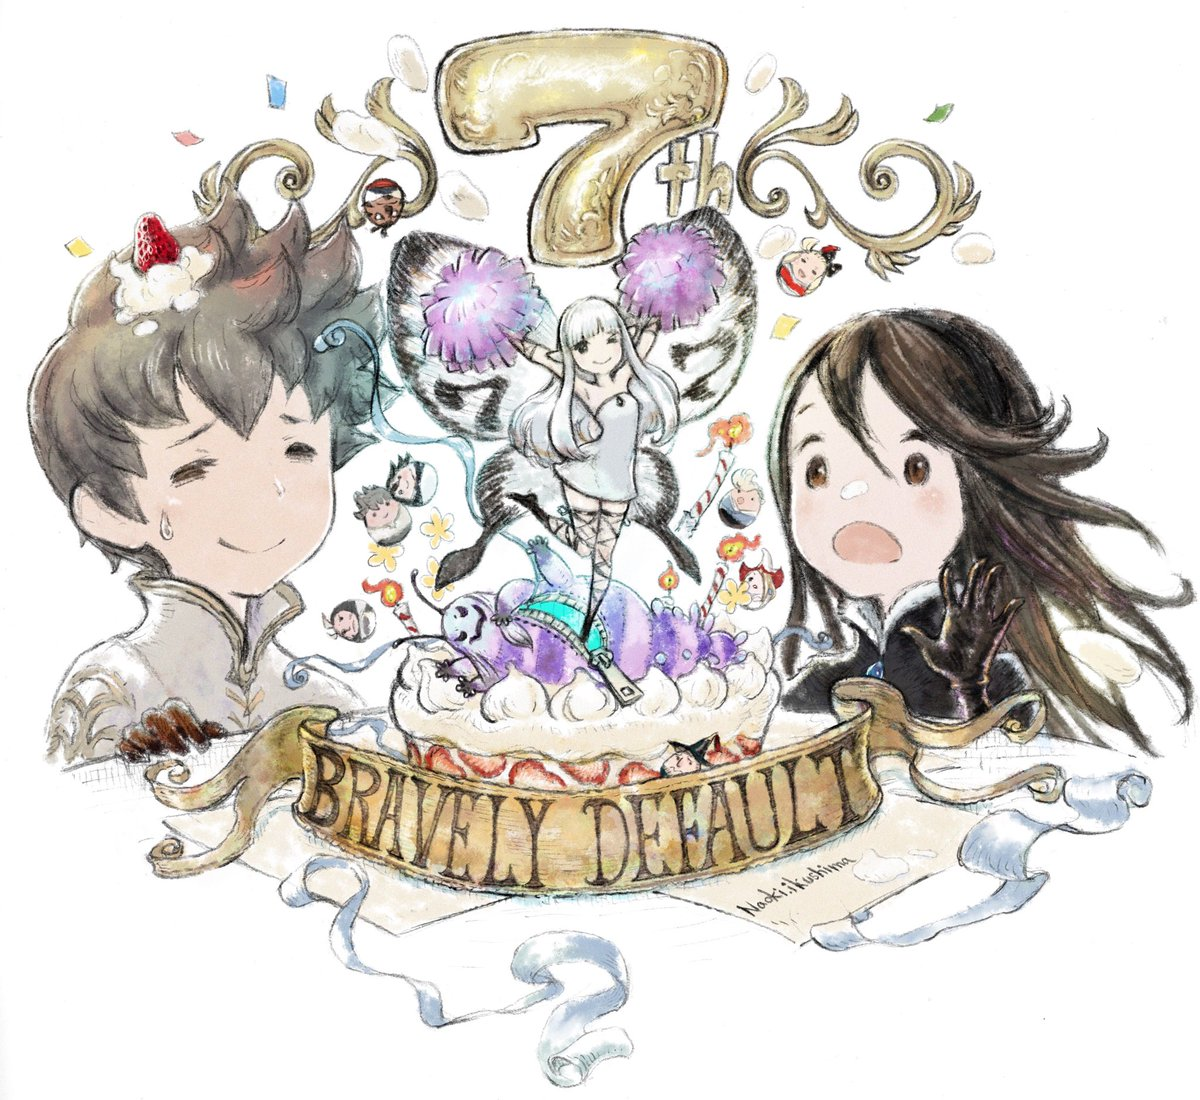 Square Enix shares special artwork for Bravely Default's 7th anniversary